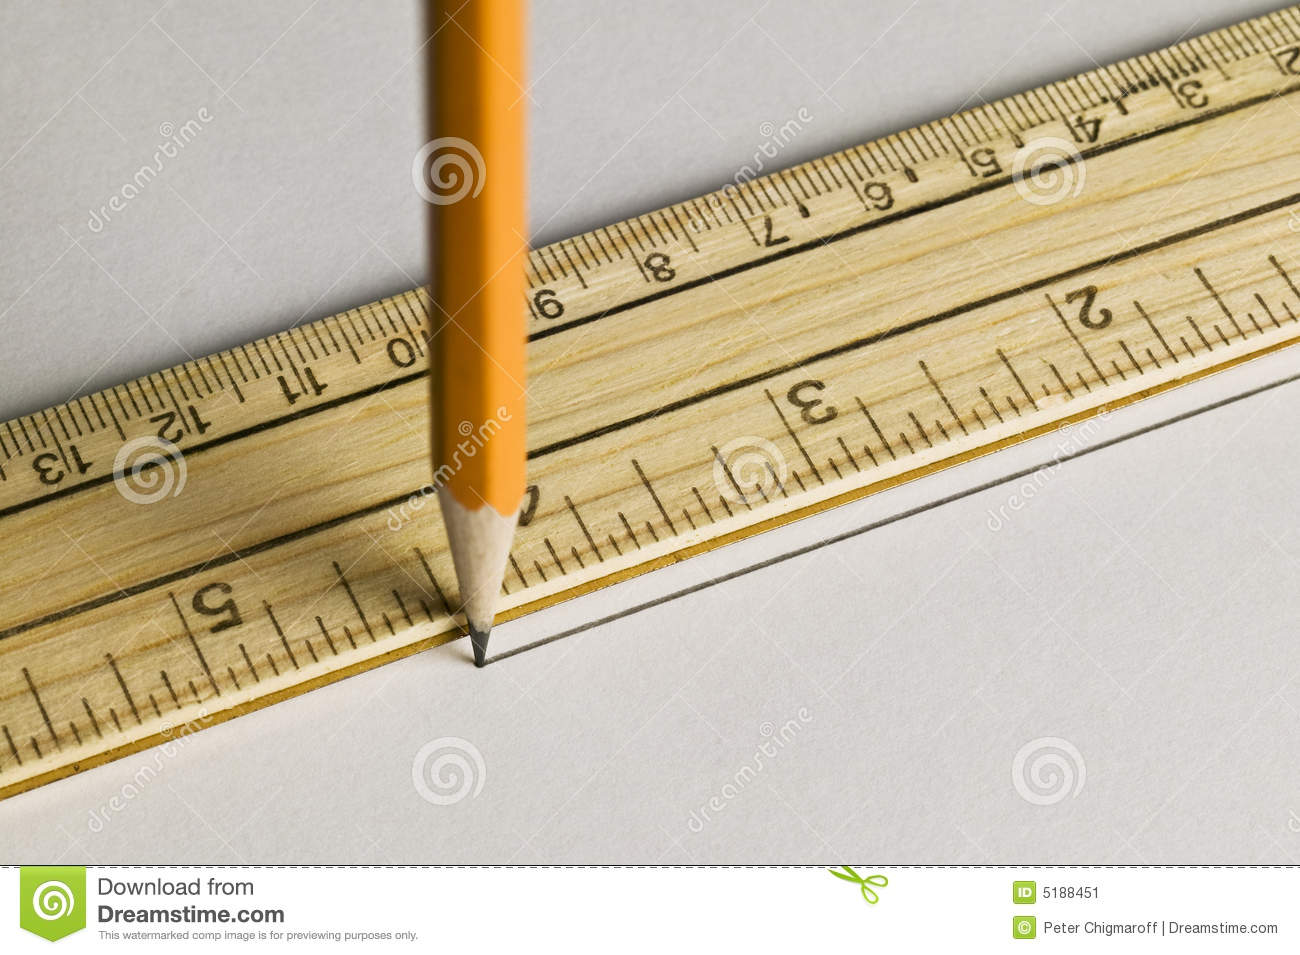 Drawing Lines With A Ruler Ks : Pencil drawing a straight line with ruler stock image